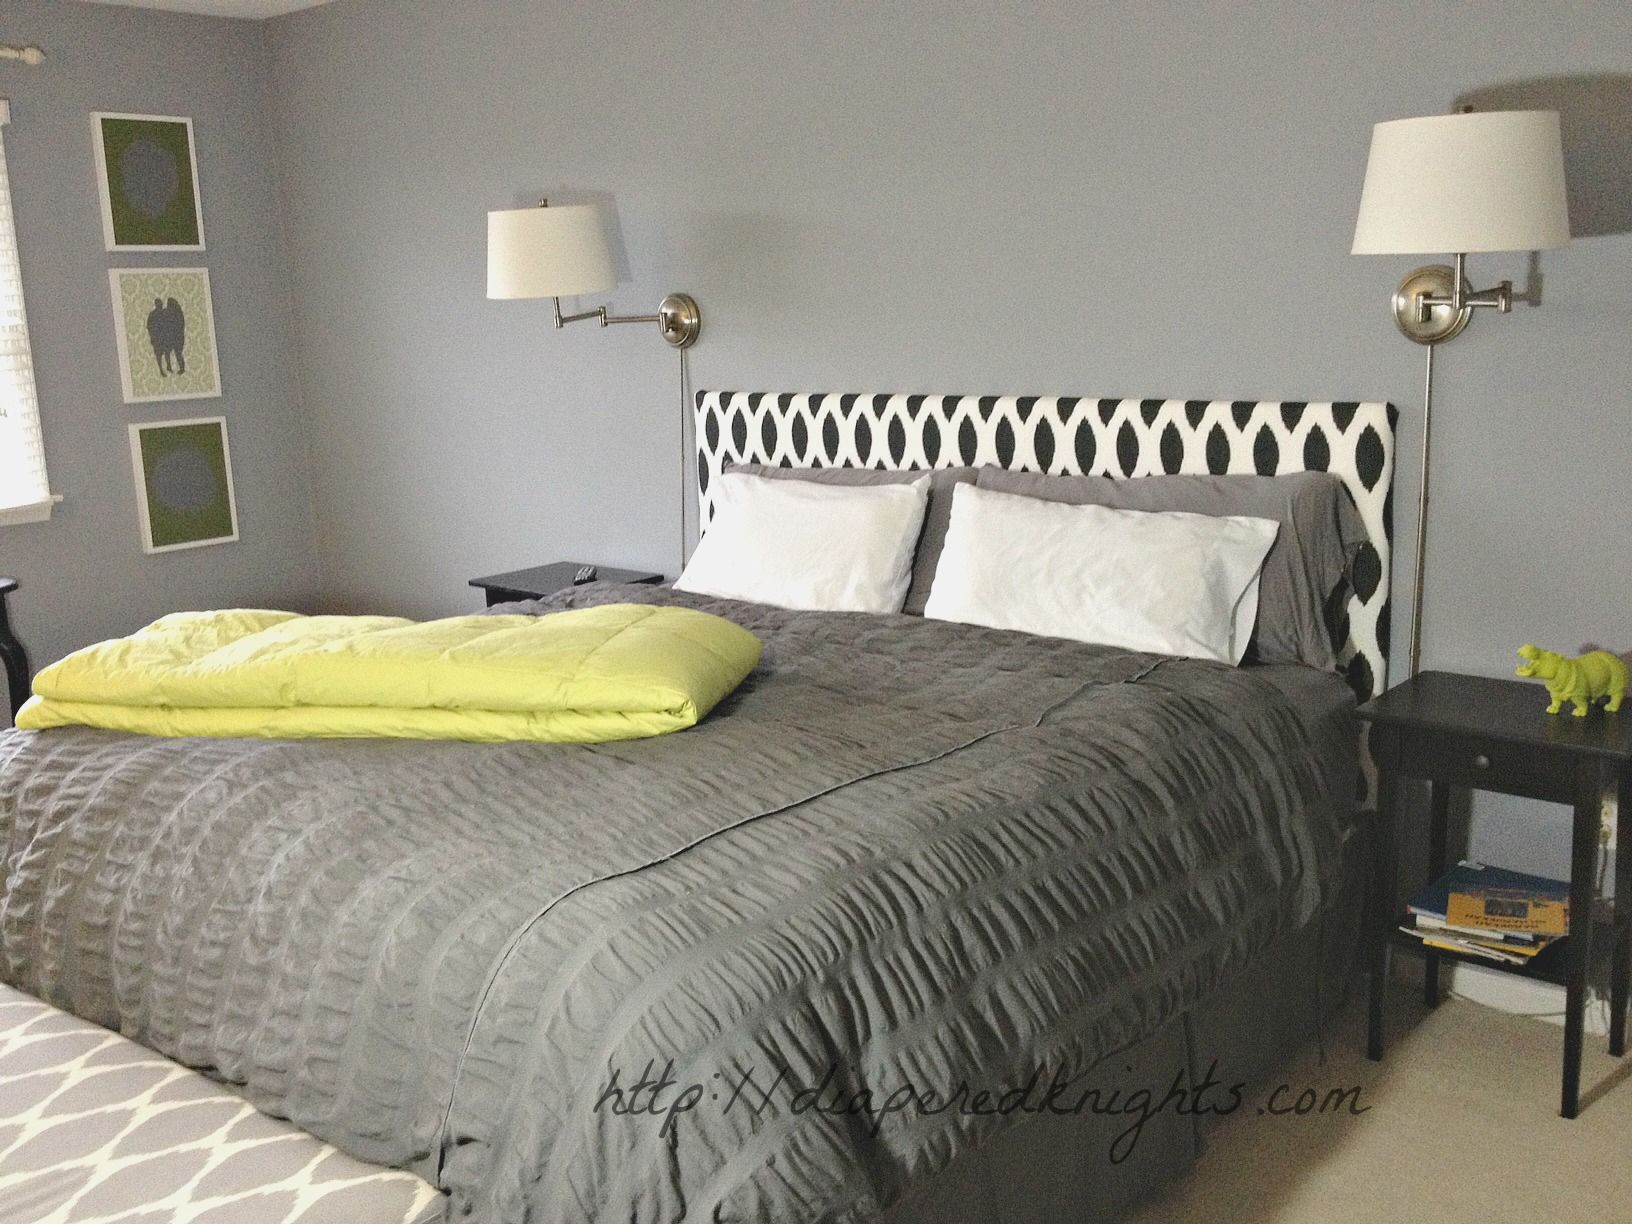 Make an Upholstered Headboard | ... could probably make my own upholstered headboard. & Make an Upholstered Headboard | ... could probably make my own ... pillowsntoast.com